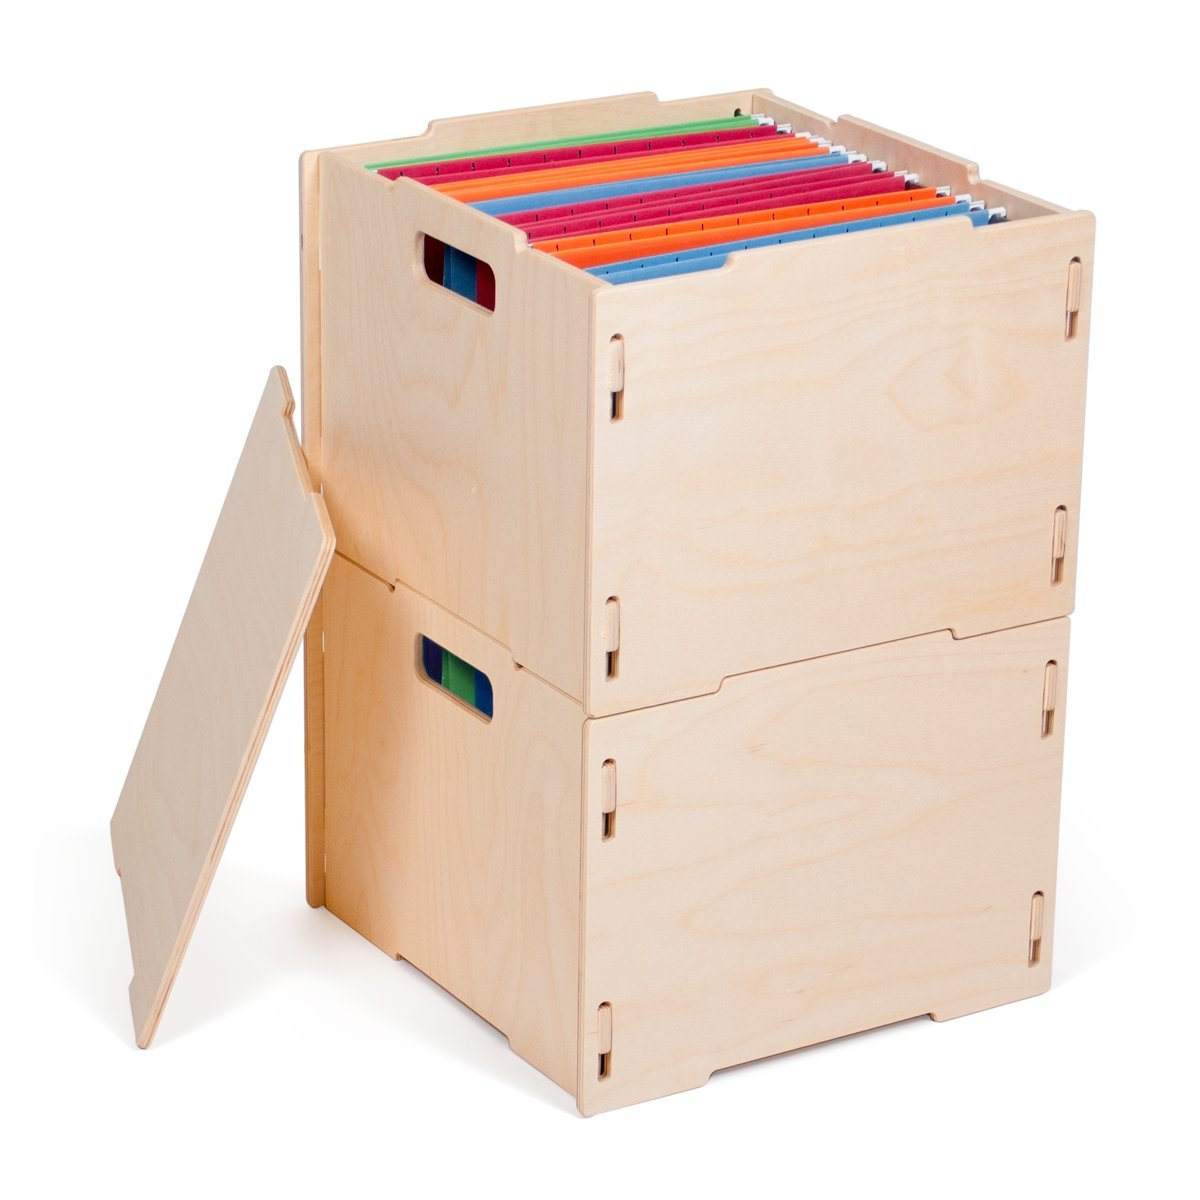 Stacking Crates File Storage (Two Crates, One Lid) CR_FILE2-RAW B01N6T6D45 File Storage (Two Crates, One Lid)|Raw Baltic Birch Raw Baltic Birch File Storage (Two Crates, One Lid)